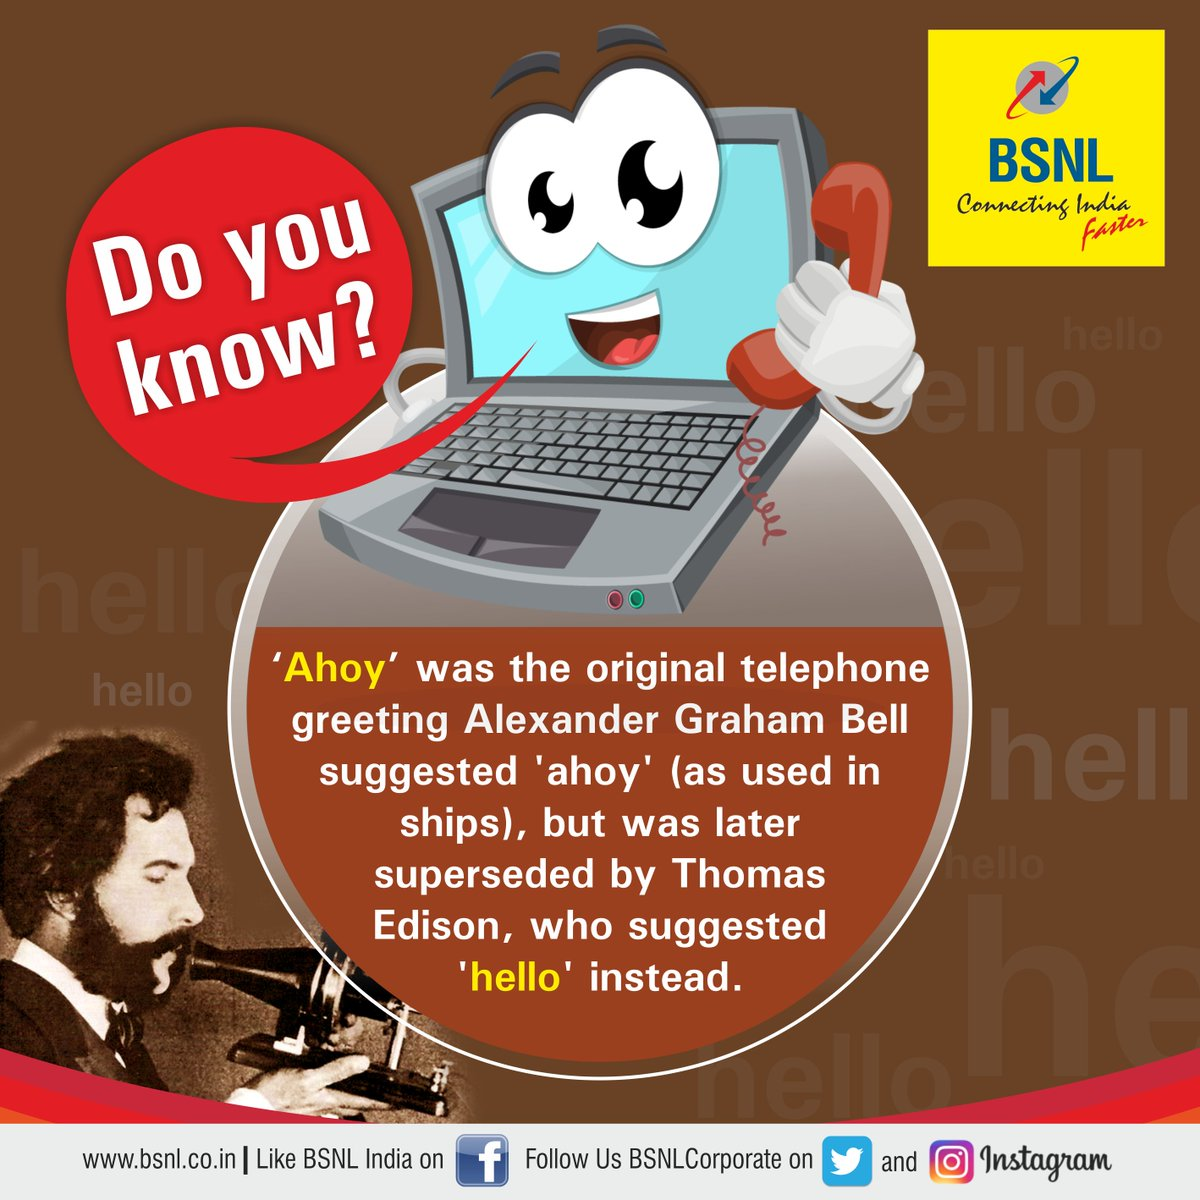 Bsnl india on twitter ahoy was the original telephone greeting dlqaoouqaa24mog m4hsunfo